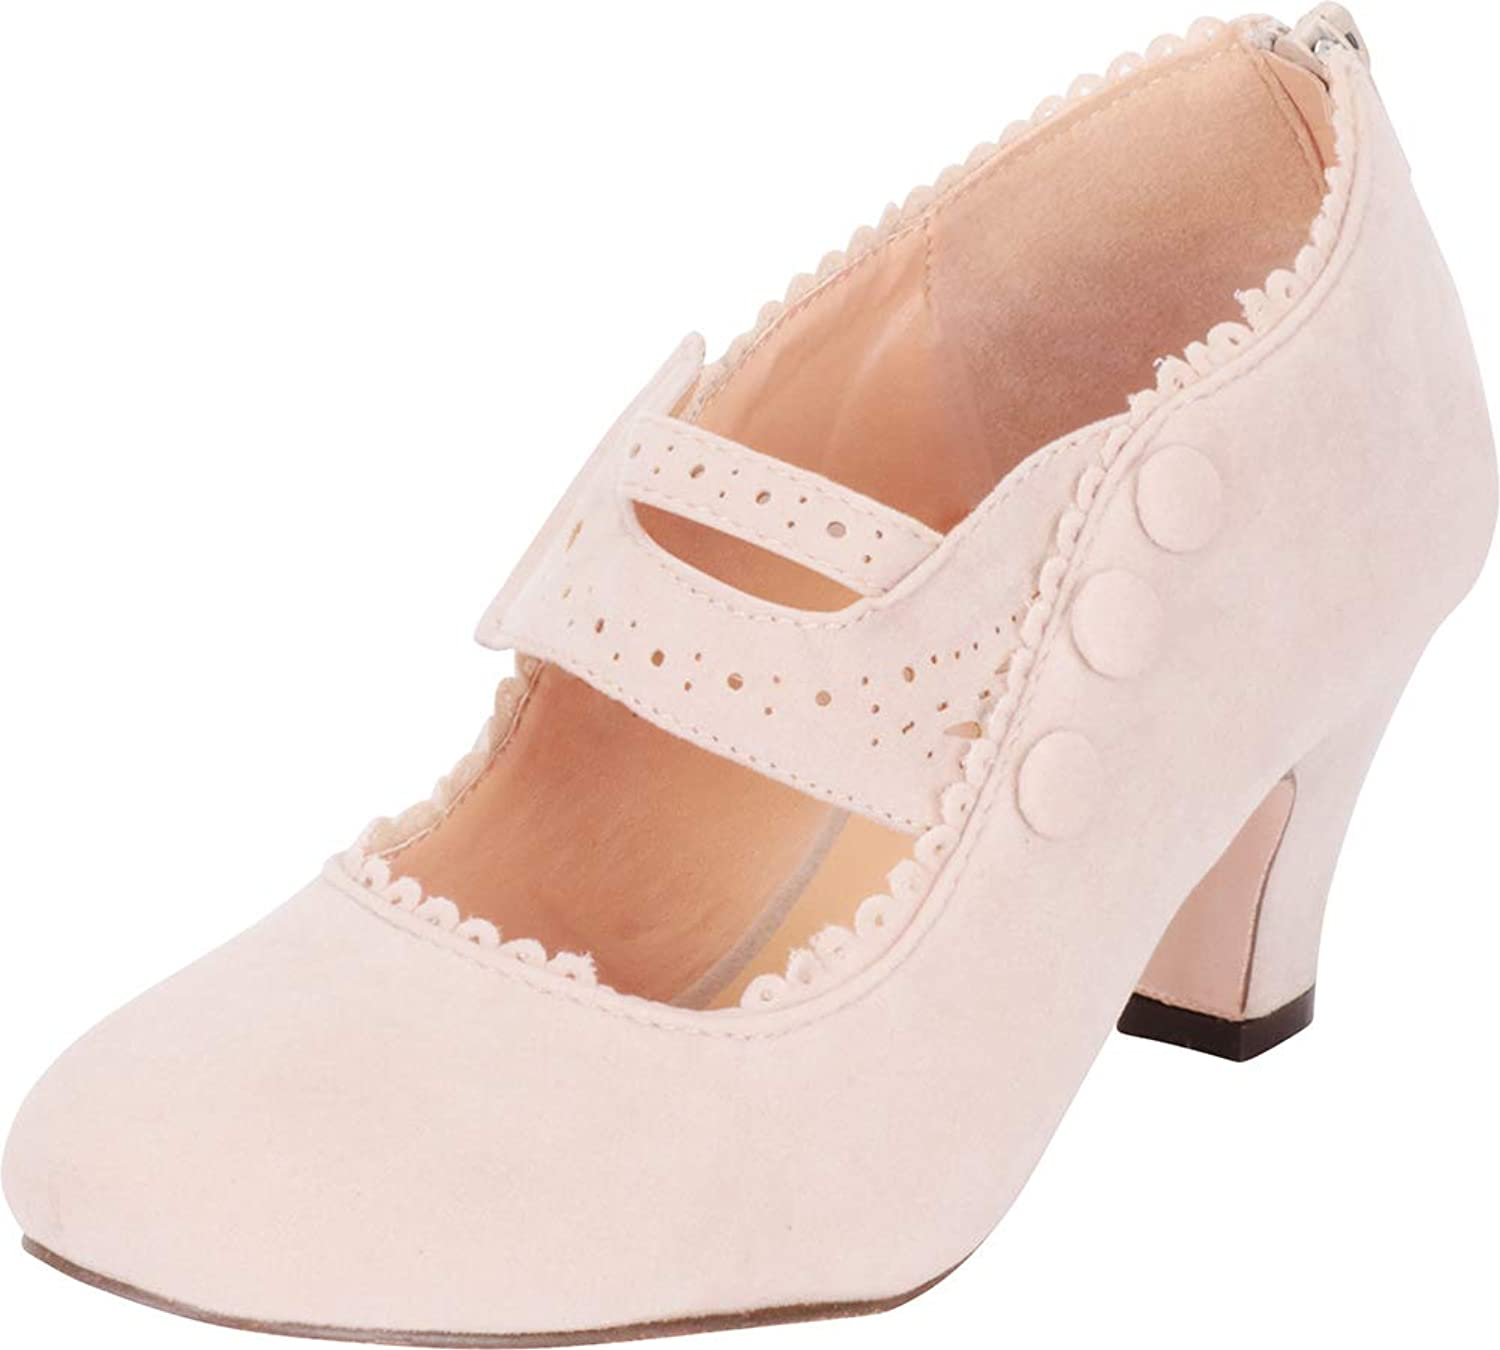 Cambridge Select Women's Vintage Inspired Pinup Eyelet Cutout Mary Jane Mid Heel Pump